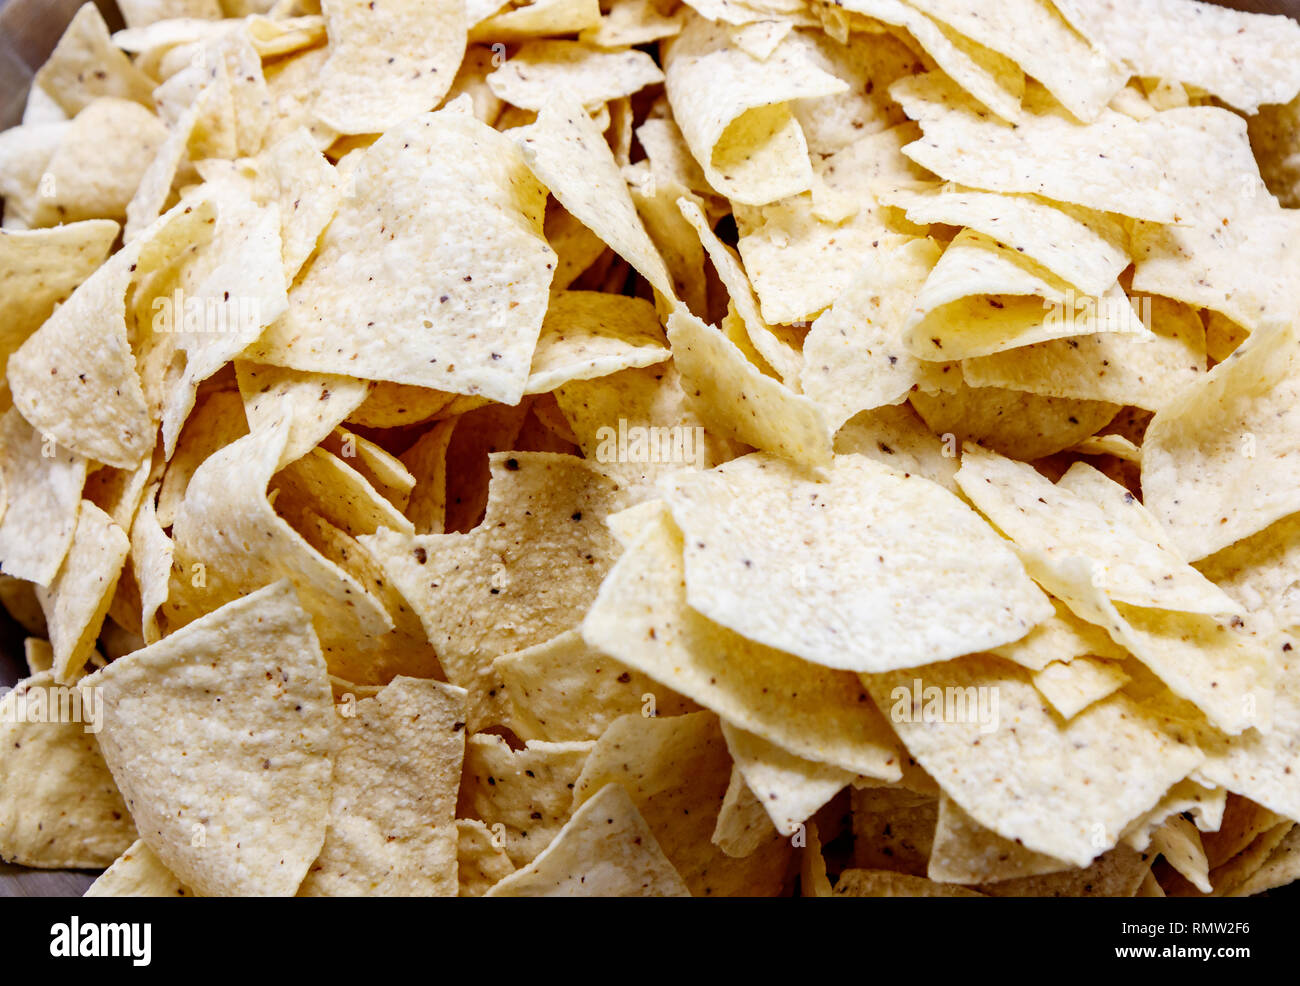 A Pile of Tortilla chips Stock Photo